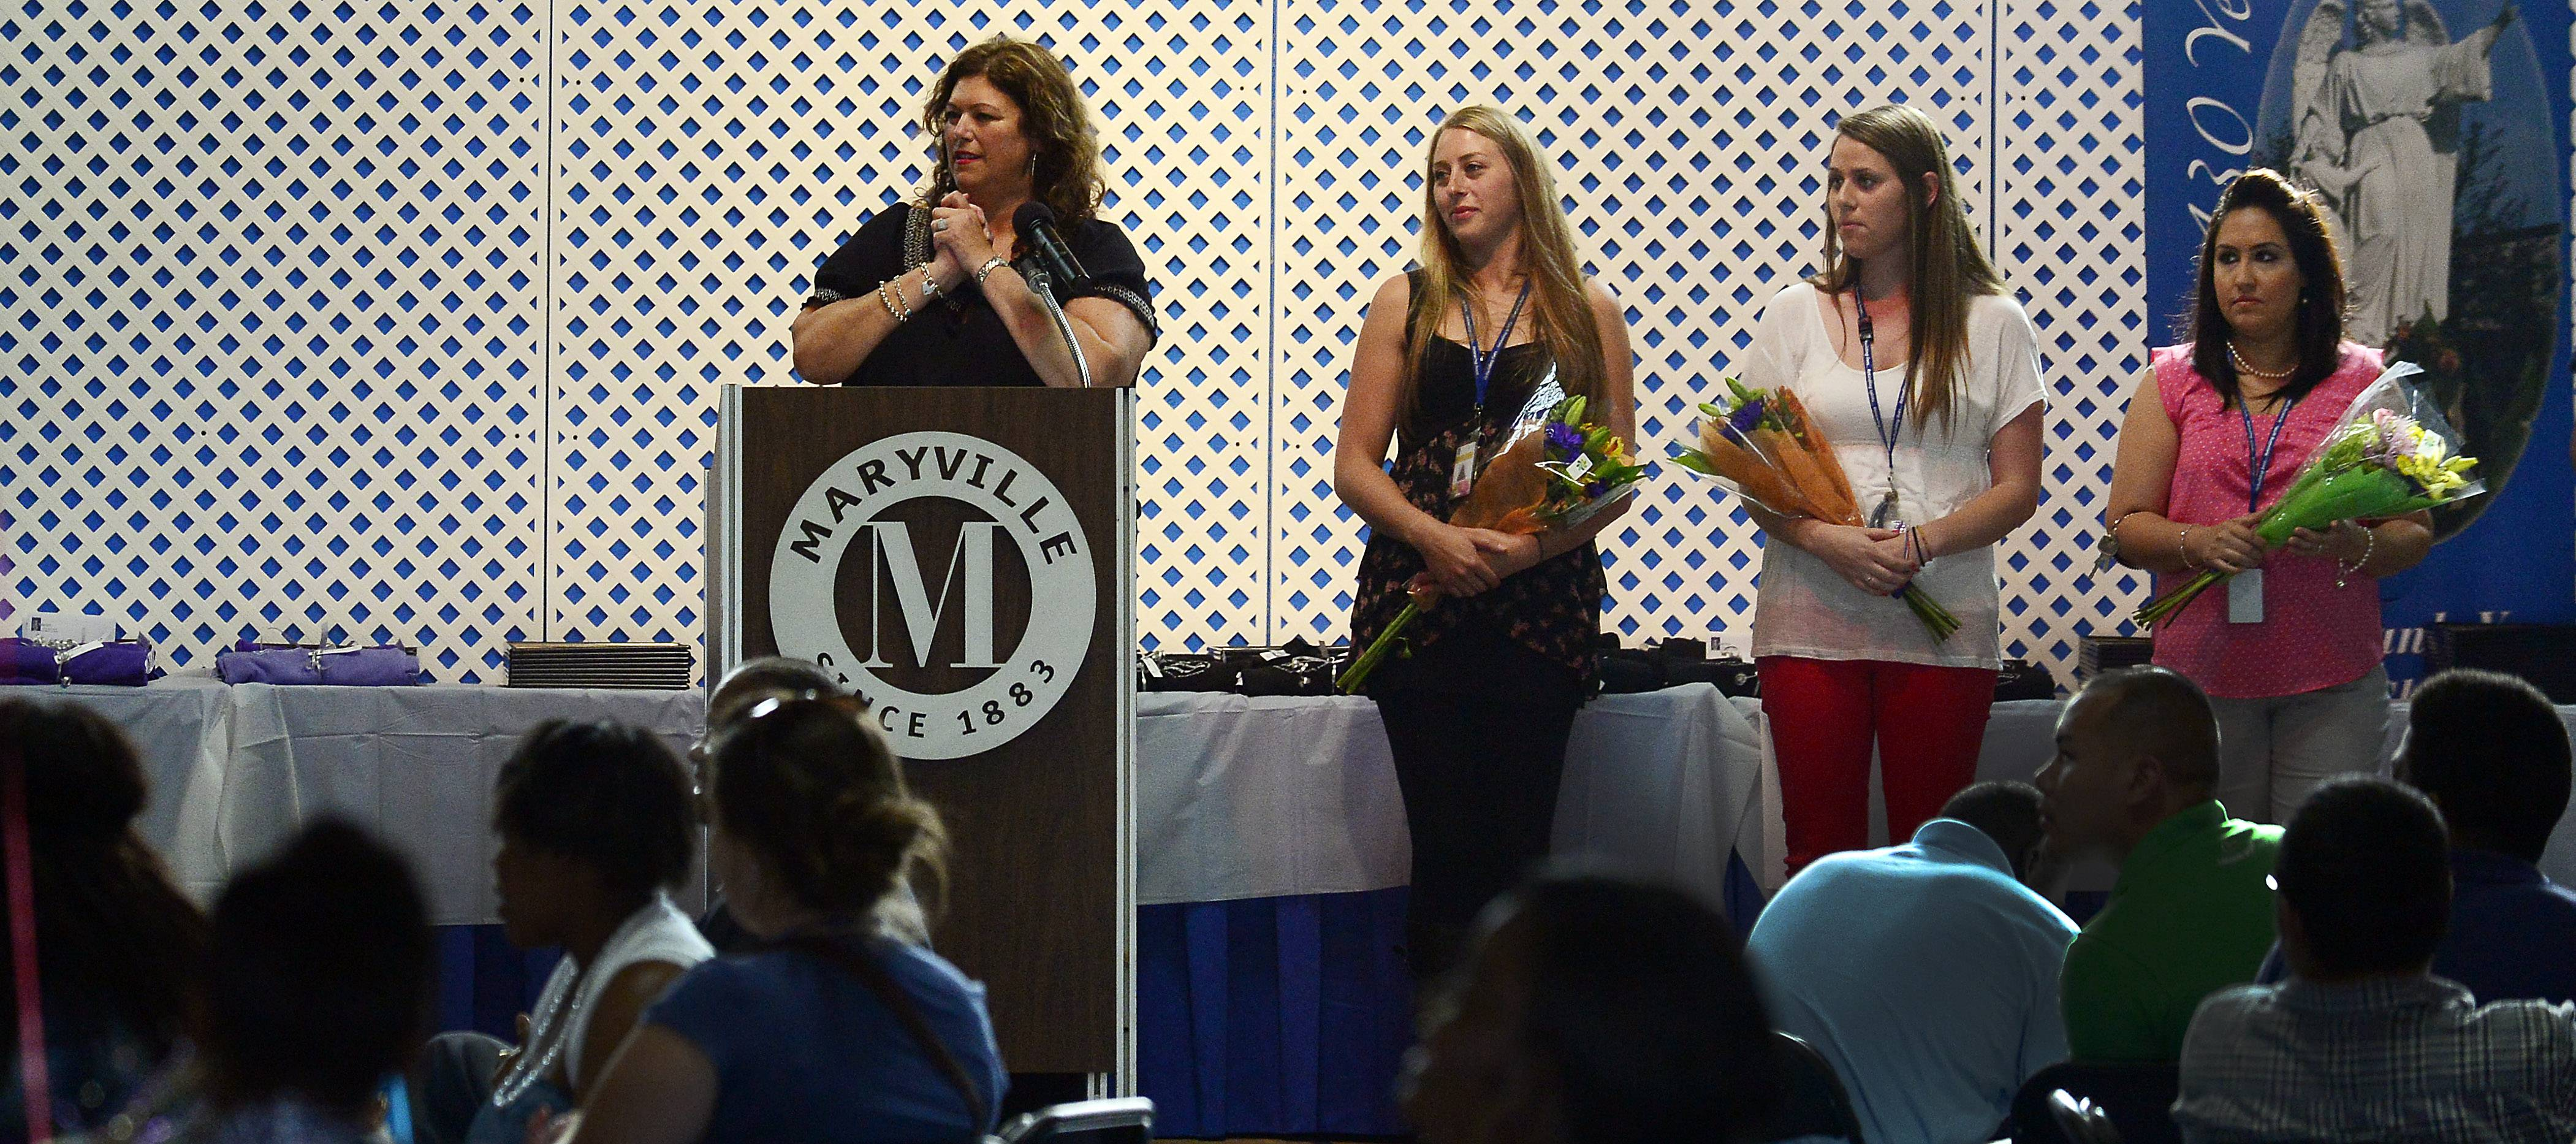 Awards and flowers were presented to Maryville employees for working toward their master's degree at awards night at Maryville's Des Plaines campus.